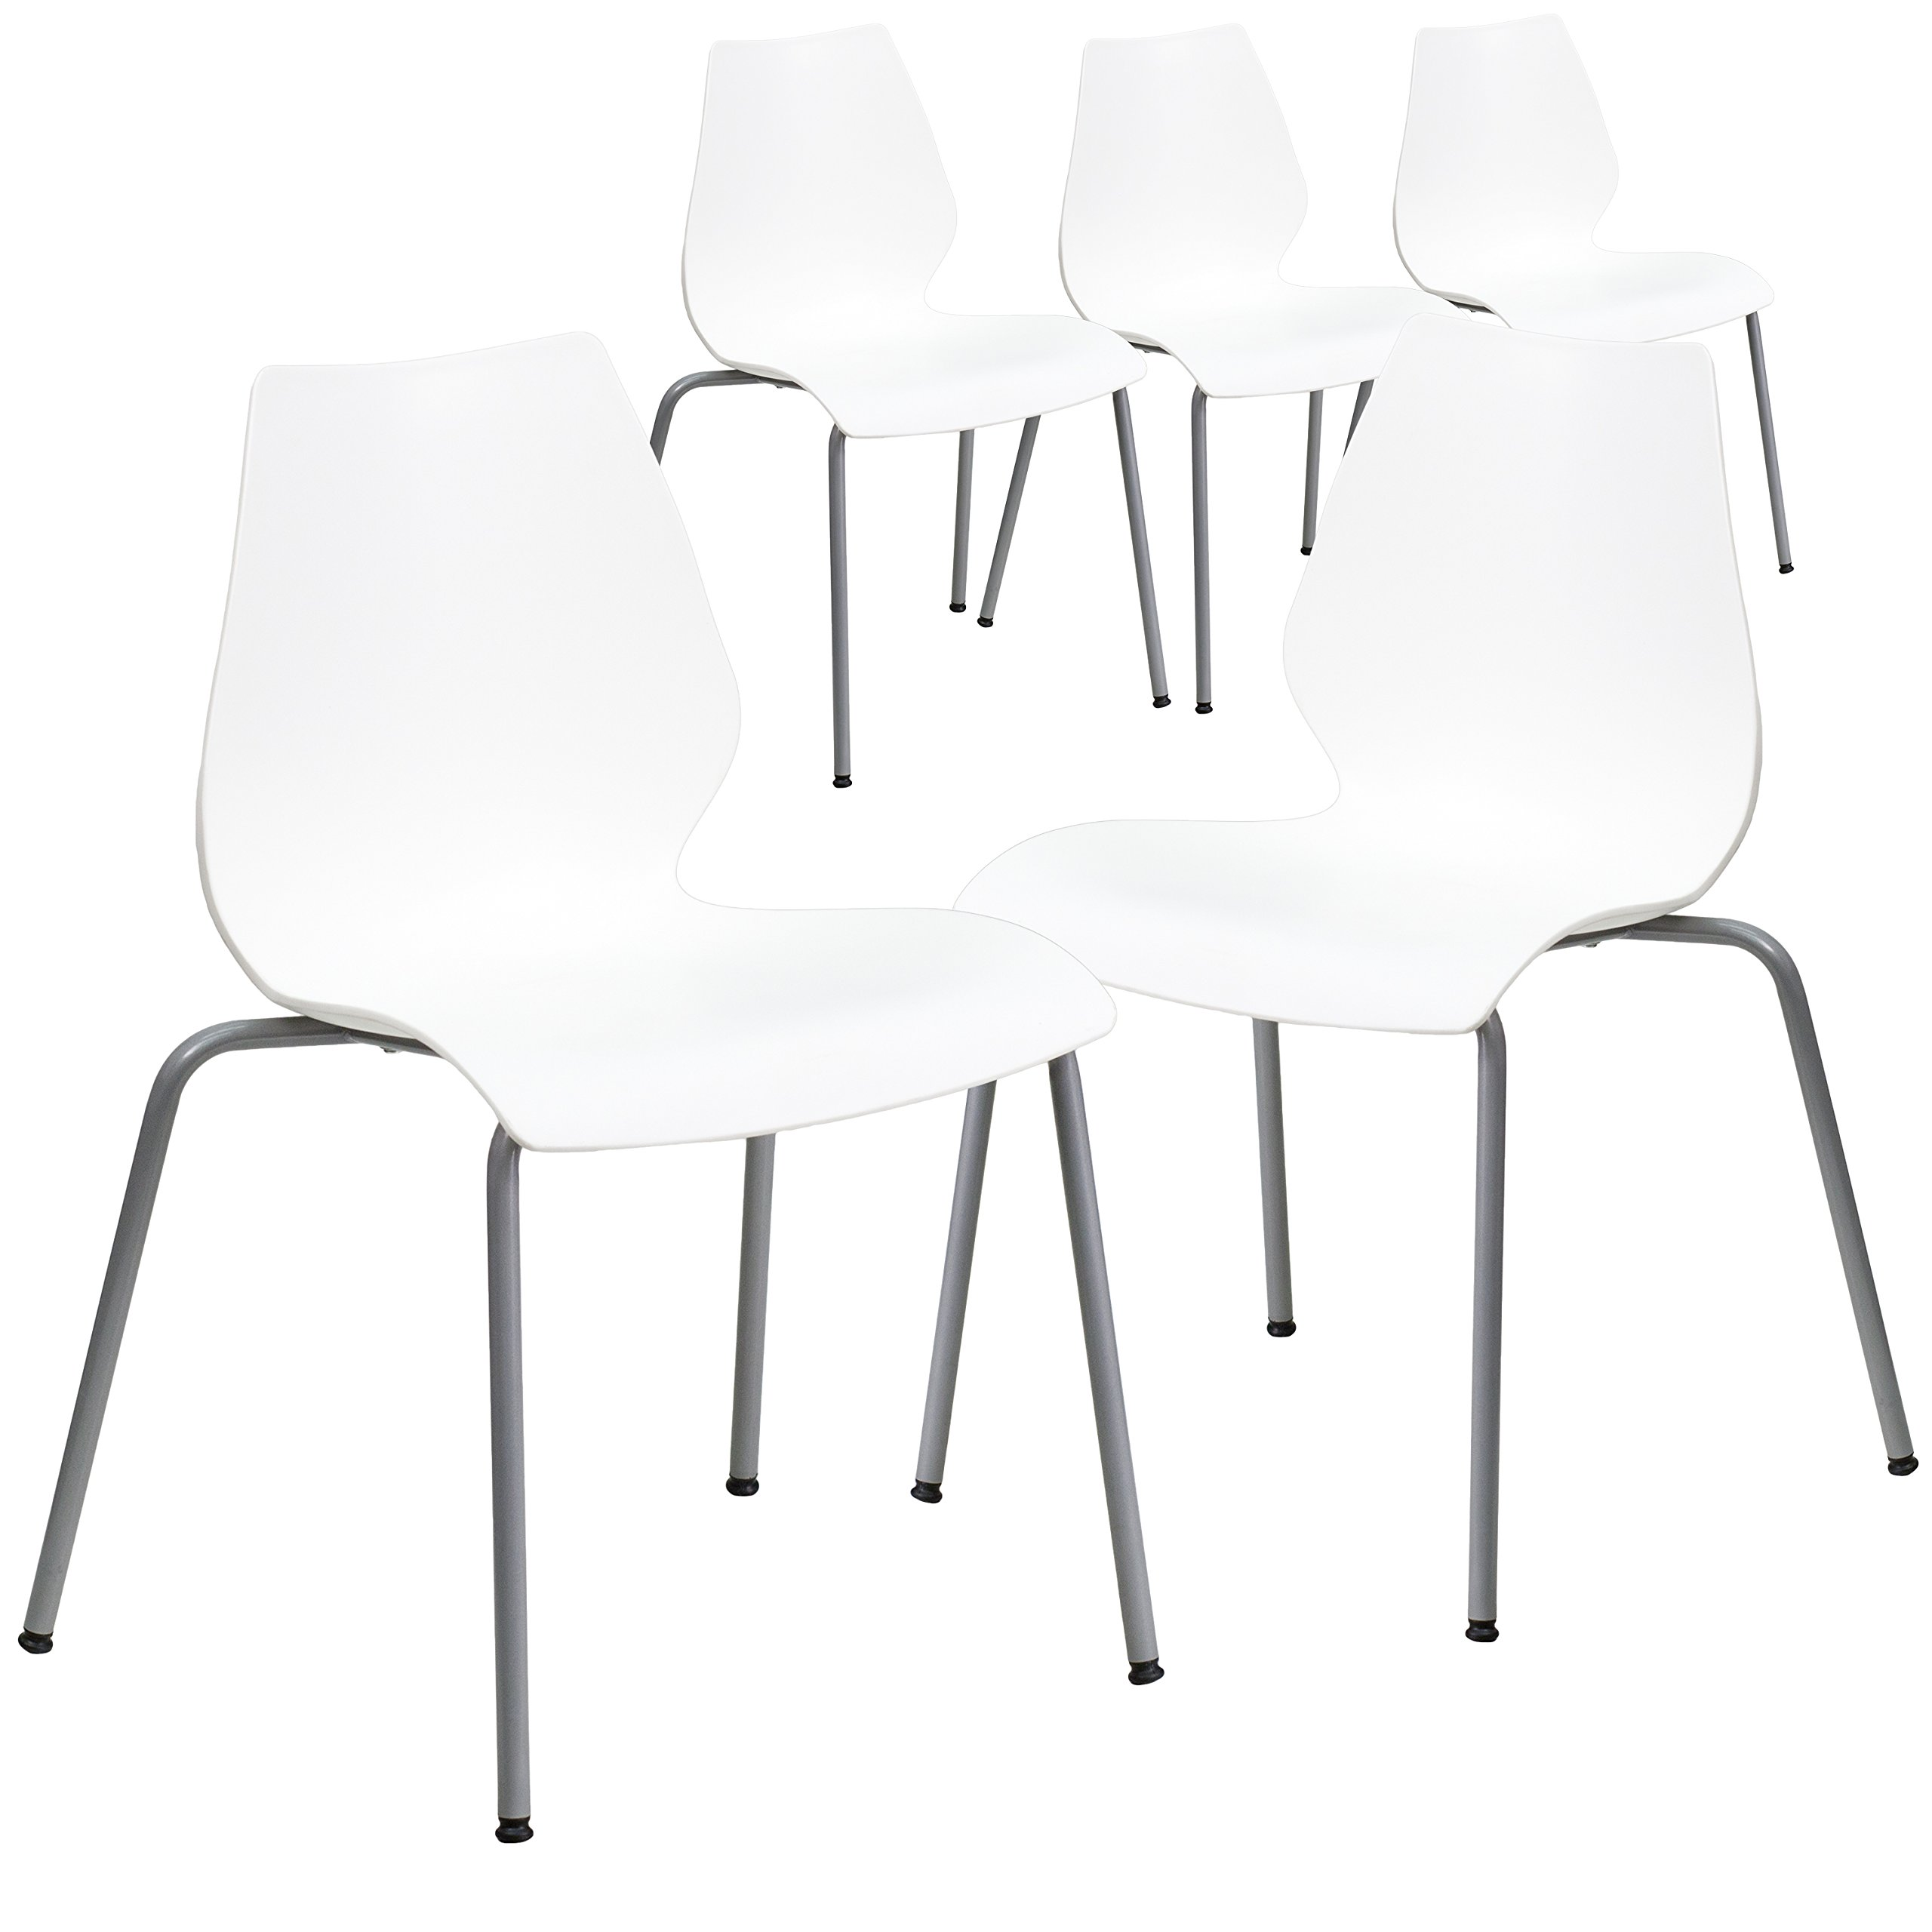 Flash Furniture 5 Pk. HERCULES Series 770 lb. Capacity White Stack Chair with Lumbar Support and Silver Frame